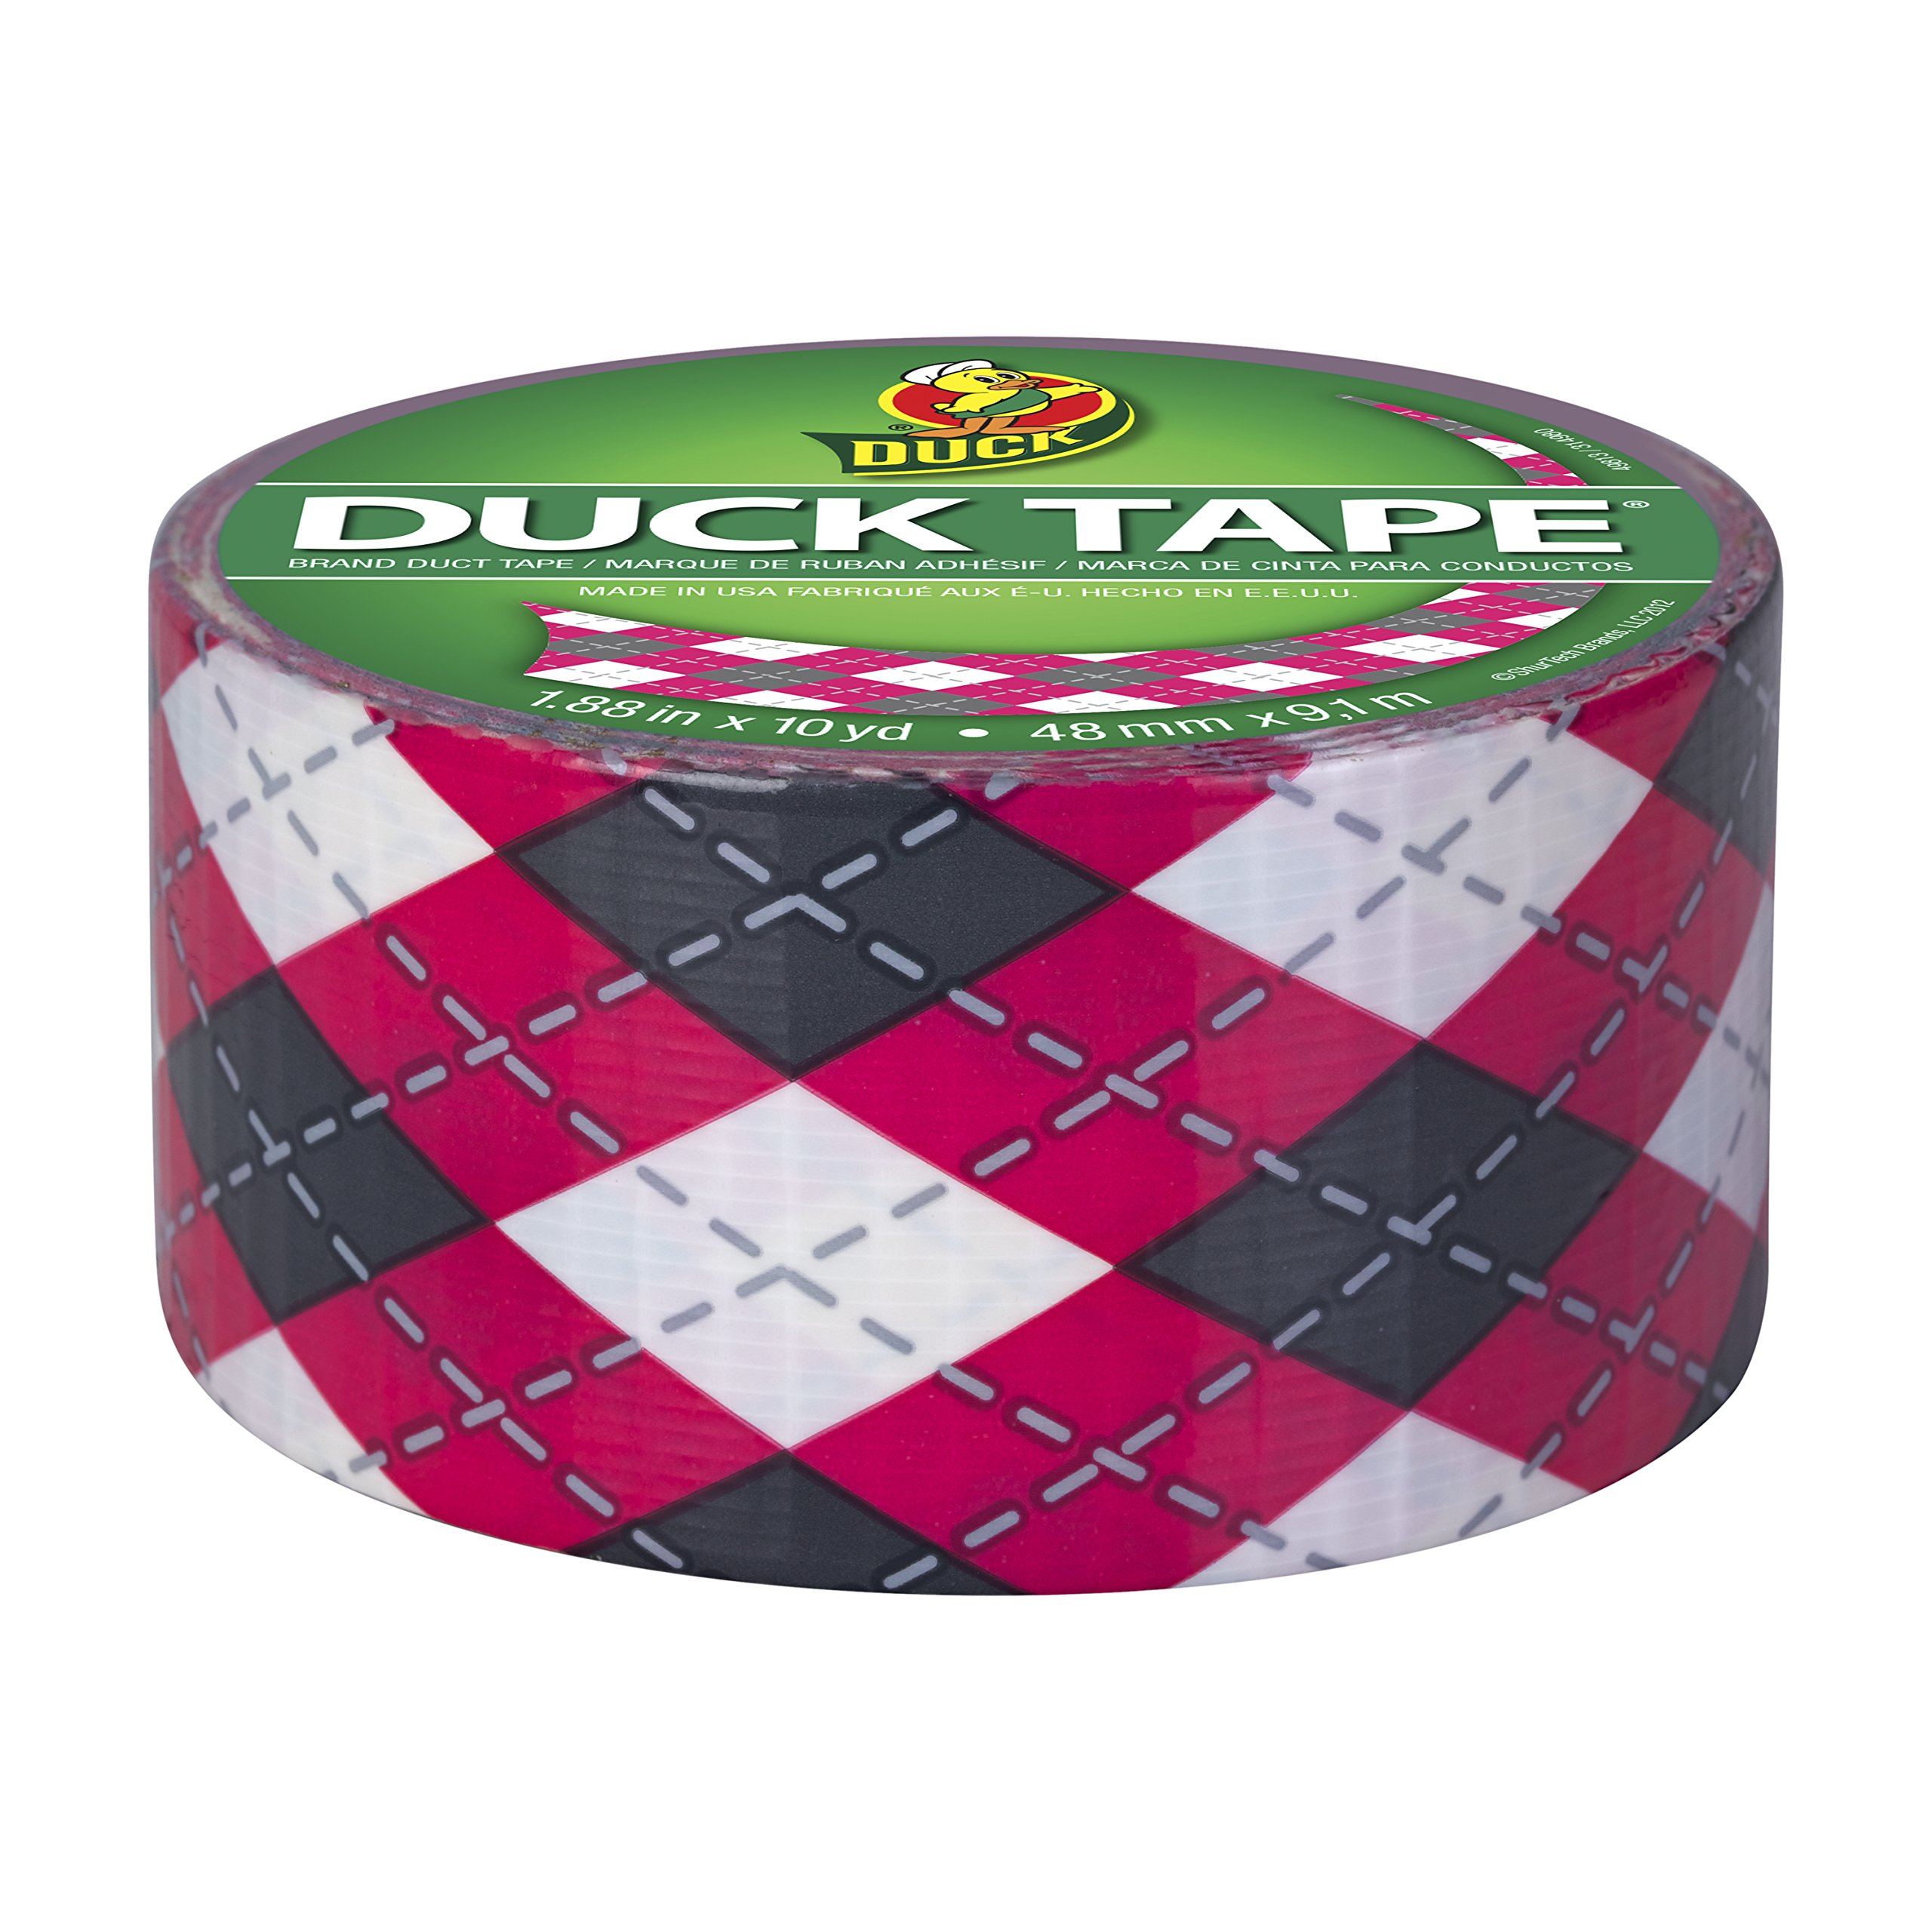 Duck Brand 280977 Printed Duct Tape, Pink Argyle, 1.88 Inches x 10 Yards, Single Roll by Duck (Image #3)